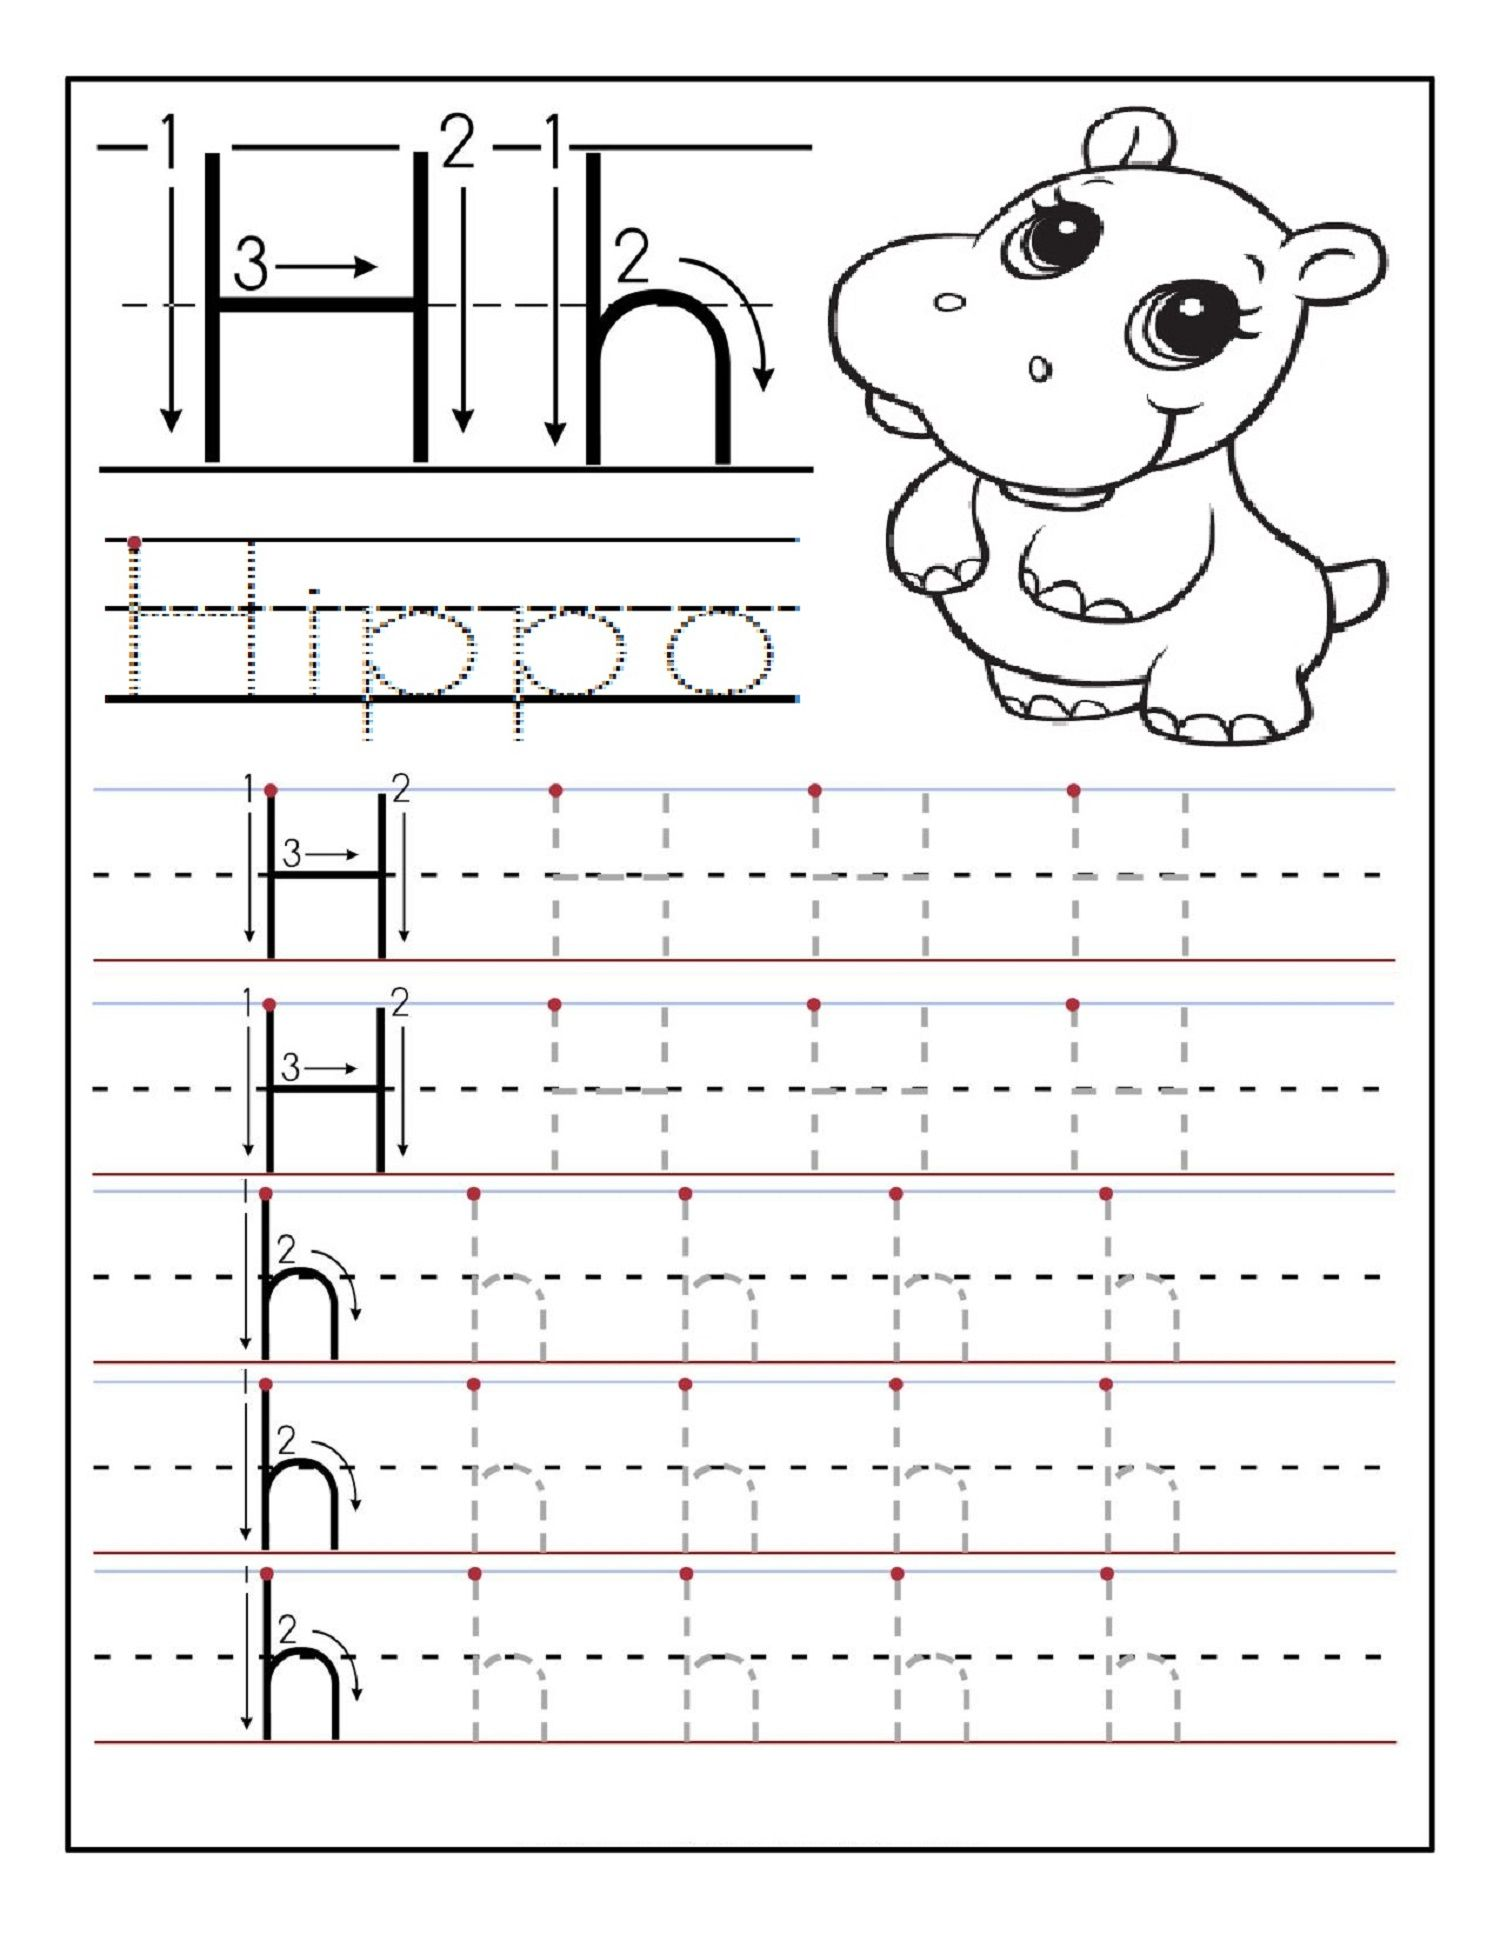 Letter tracing sheets for pre school kids dear joya kids letter tracing sheets for pre school kids dear joya spiritdancerdesigns Images